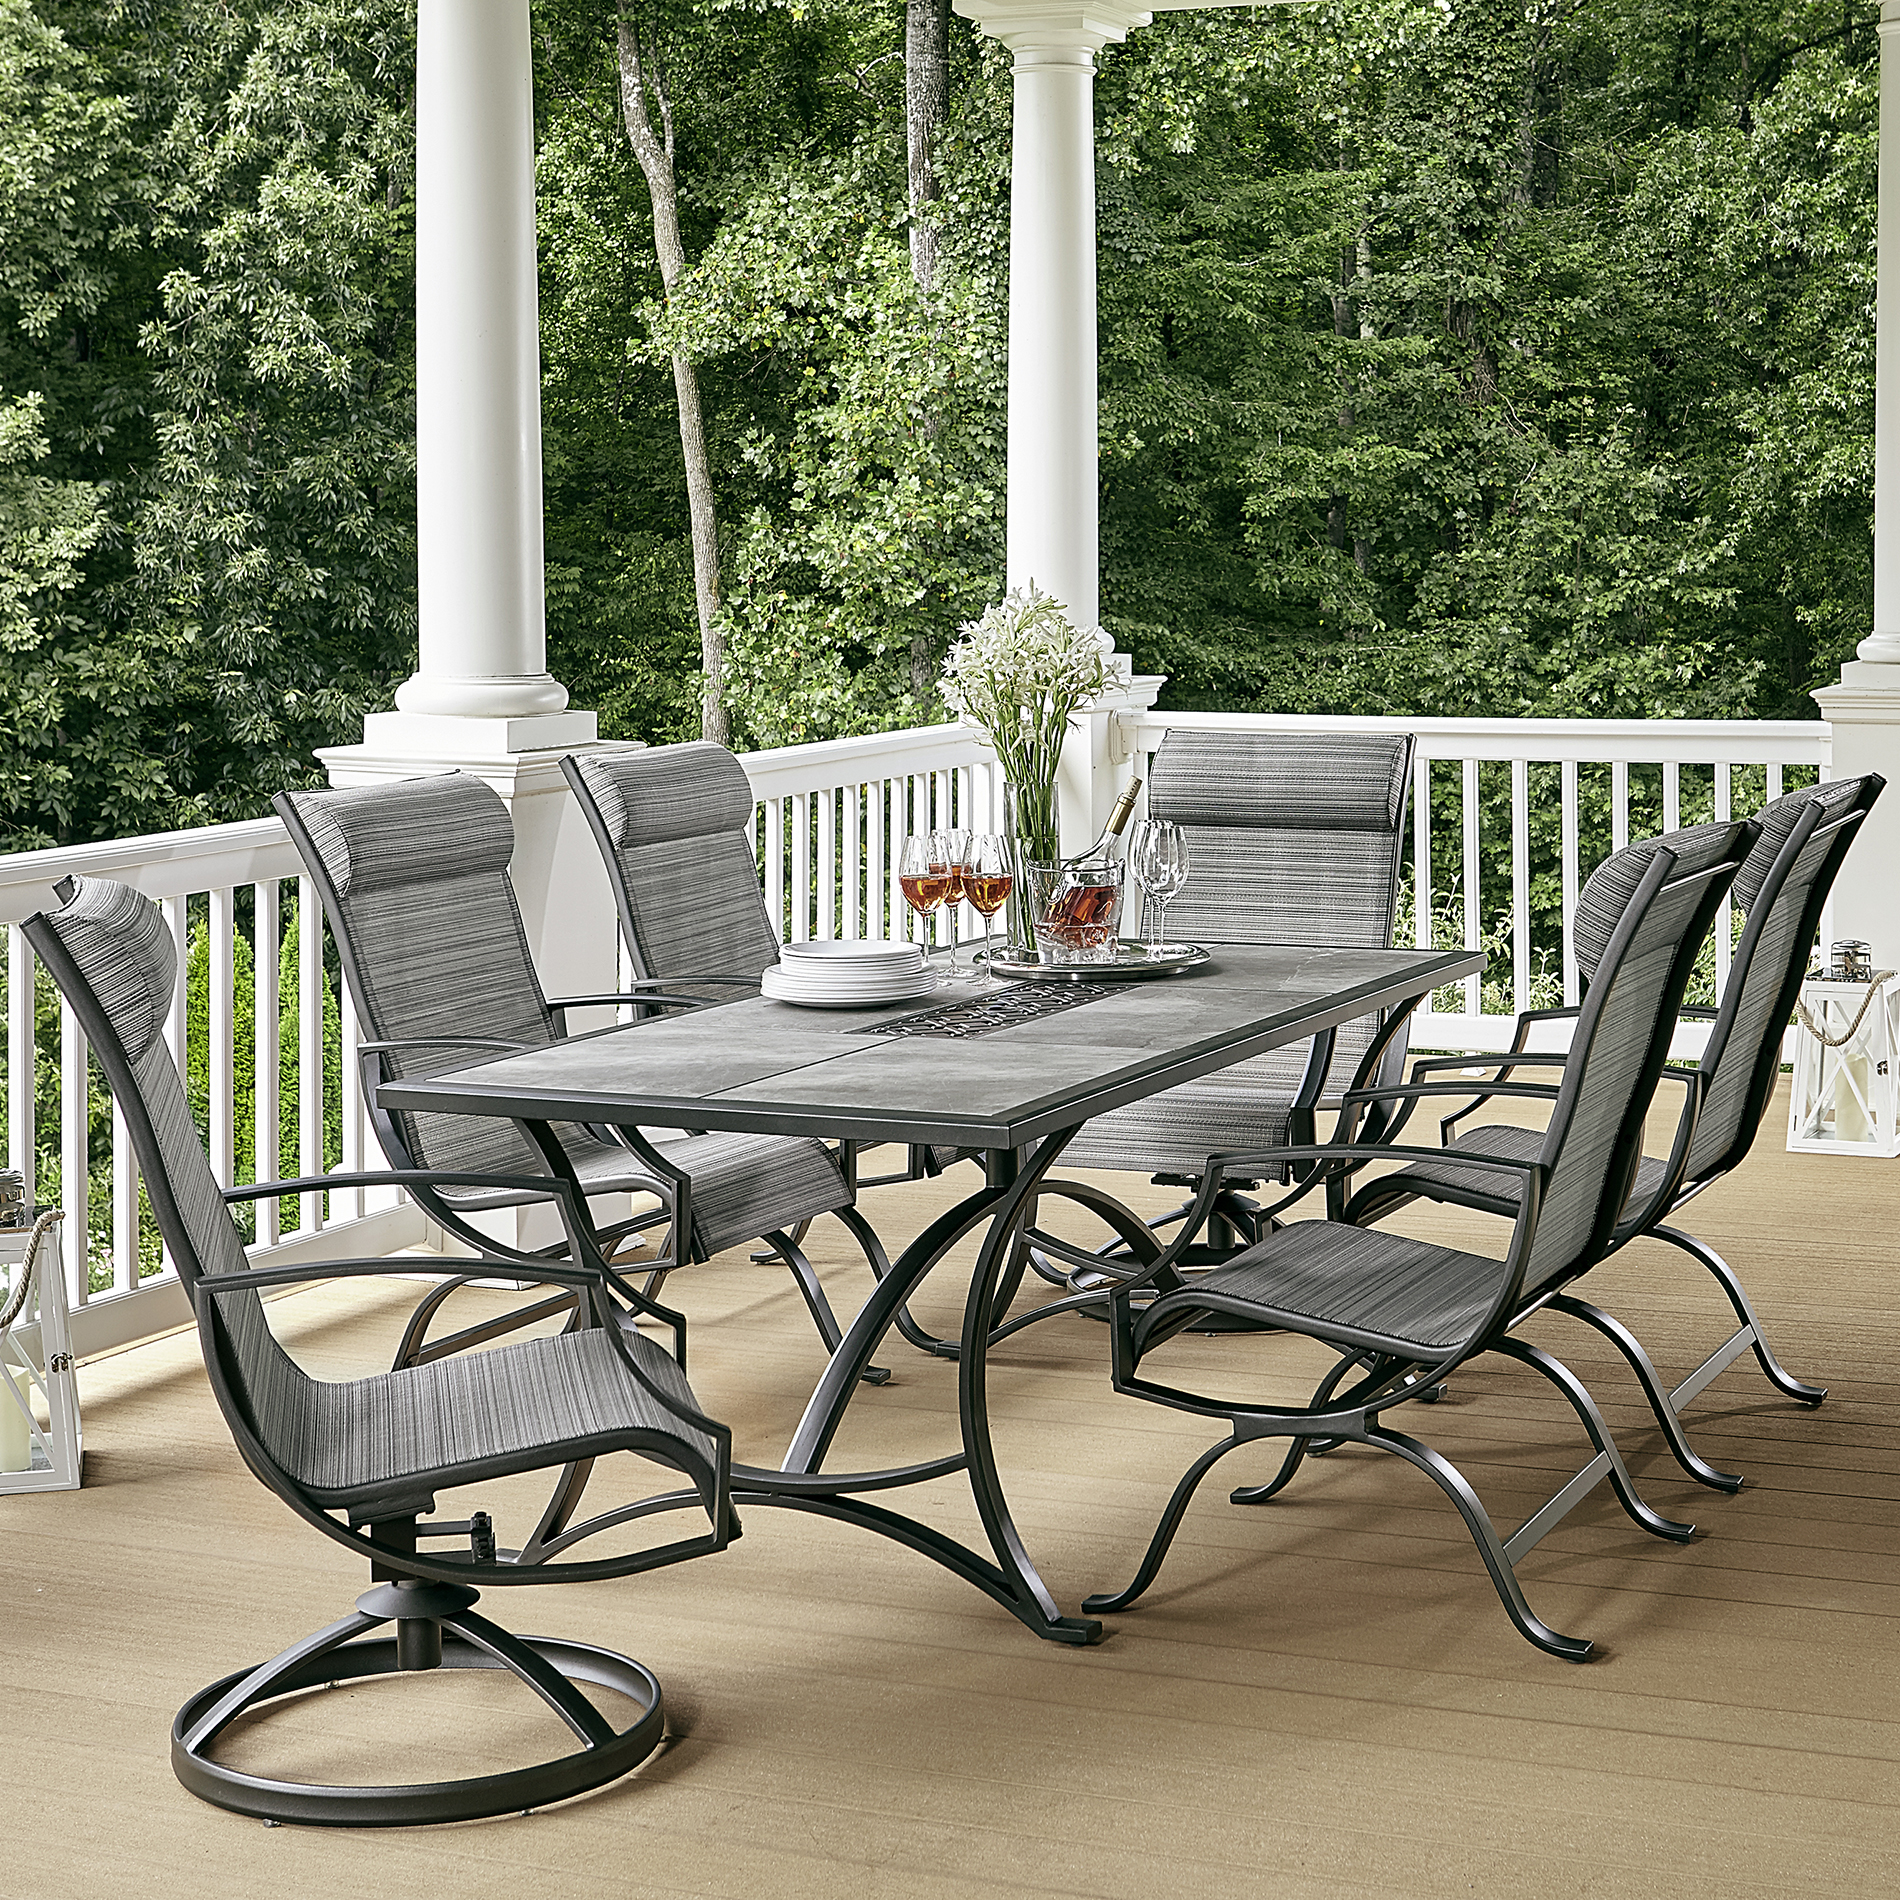 Outdoor dining sets Ceramic top dining set * limited availability NIFQKDC